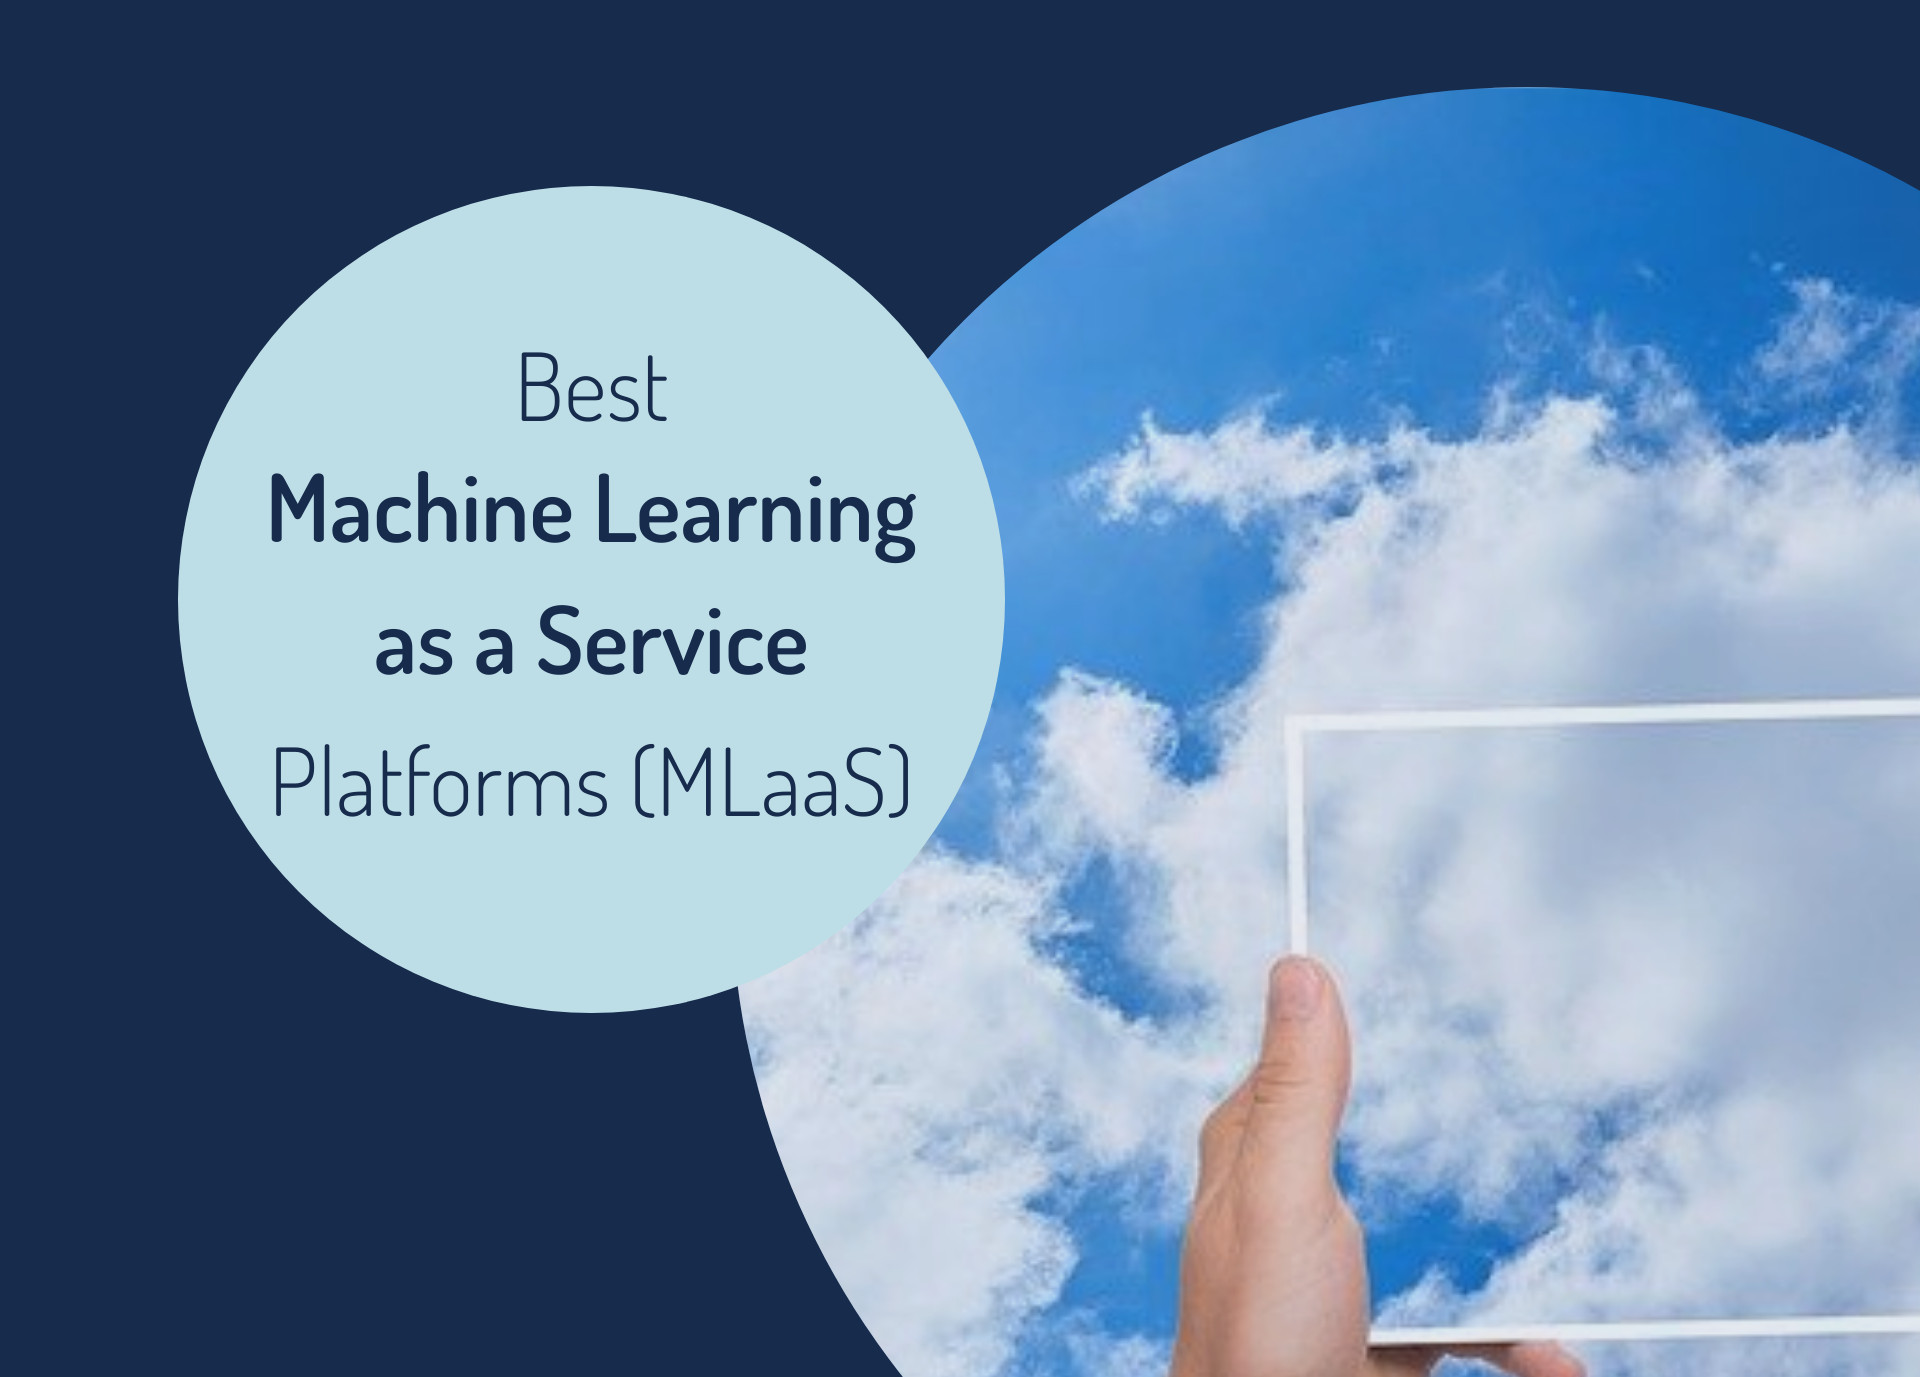 Best Machine Learning as a Service Platforms (MLaaS) That You Want to Check as a Data Scientist